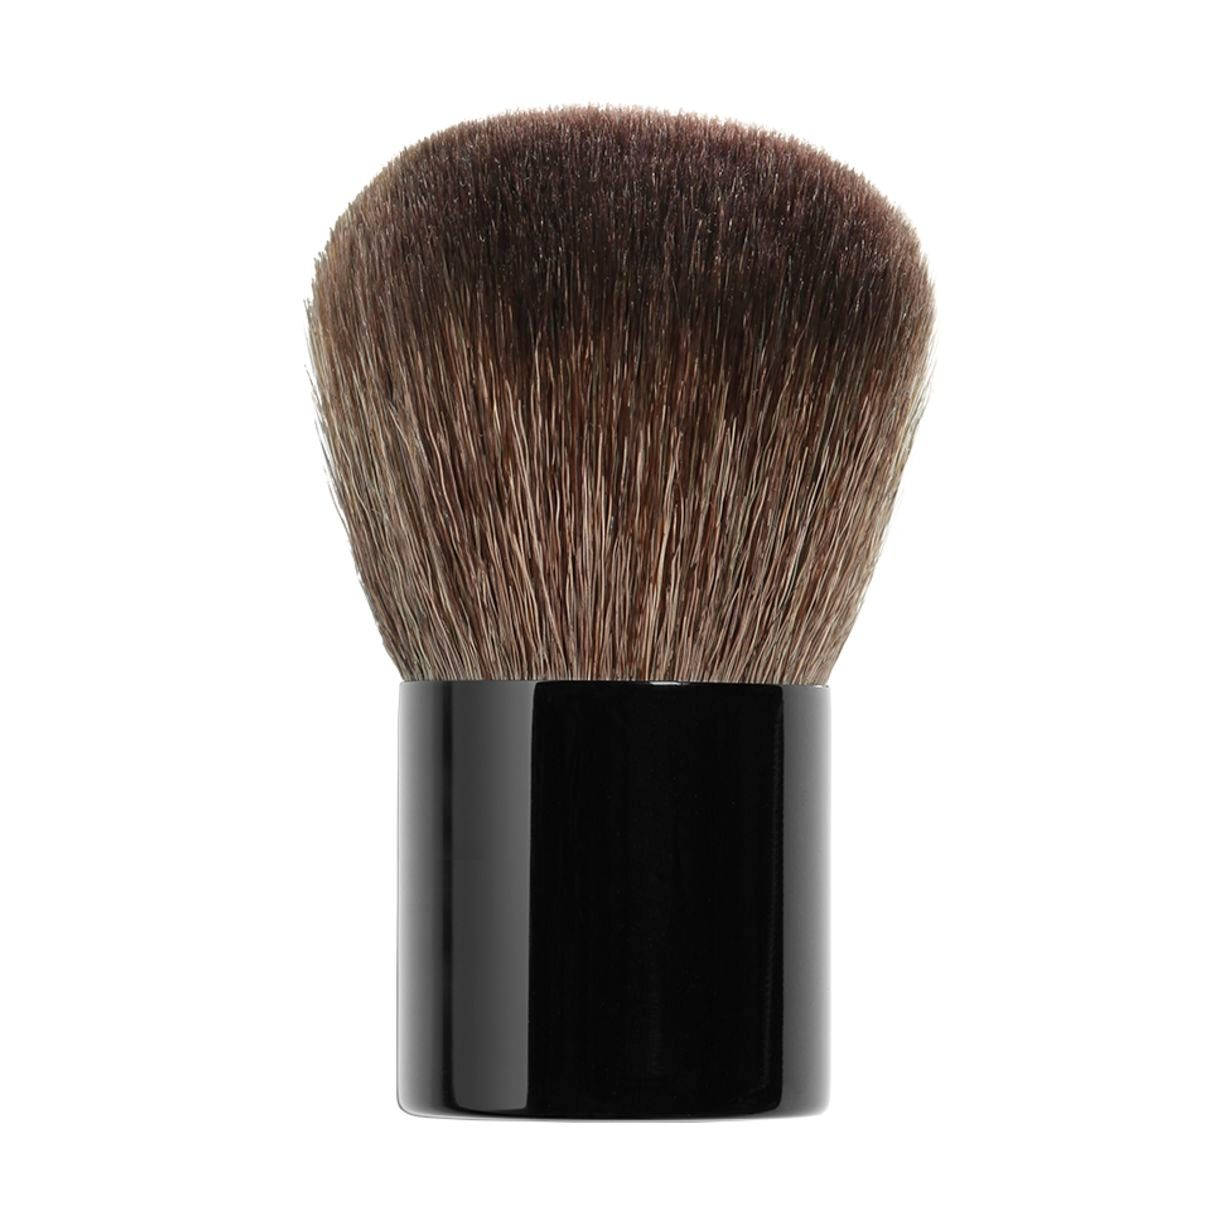 810d3b9580 Makeup Brushes and Accessories CHANEL : Complexion Brushes - Lip...